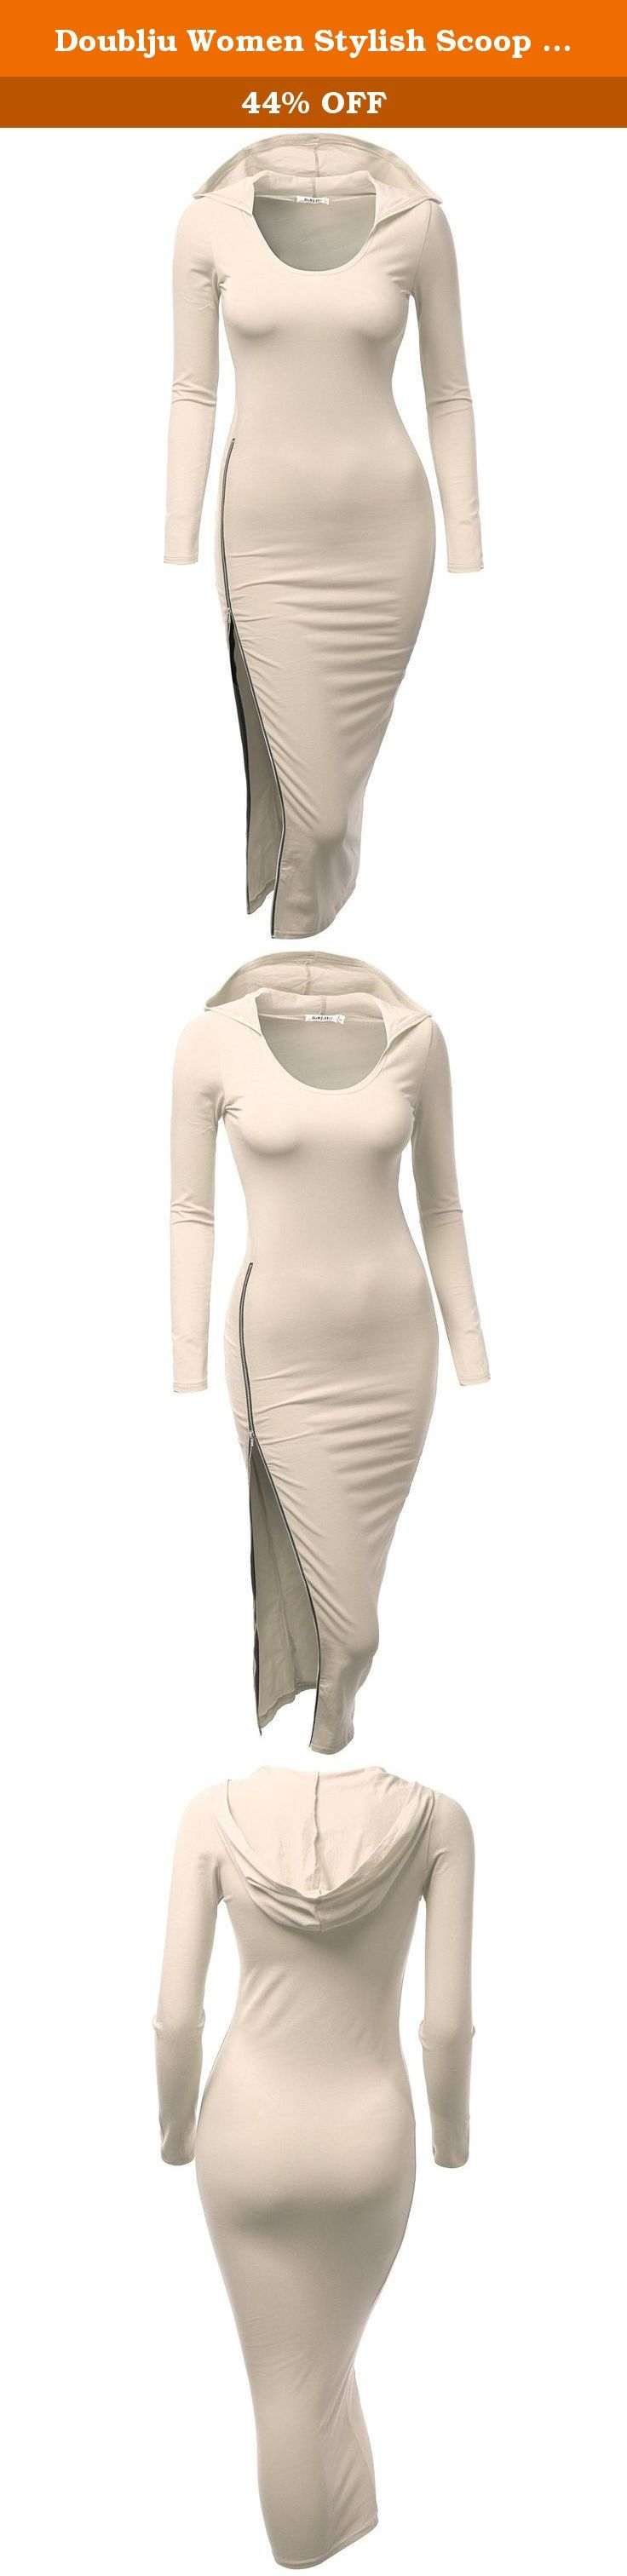 Doublju Women Stylish Scoop Neck Long Sleeve Hoodie Dress BEIGE,L. Doublju Women Stylish Scoop Neck Long Sleeve Hoodie Dress BEIGE,L red dress for women cheap bridesmaid dresses long occasion dress clothing plus size fashion ladies playsuits green dresses dresses for teenagers classy dresses long evening dresses for women womens navy dress shoes long ladies dresses work dresses women HotPink womens fashion Cutout-Detailed Dress clothes and dresses Knotted party dresses for plus size women...